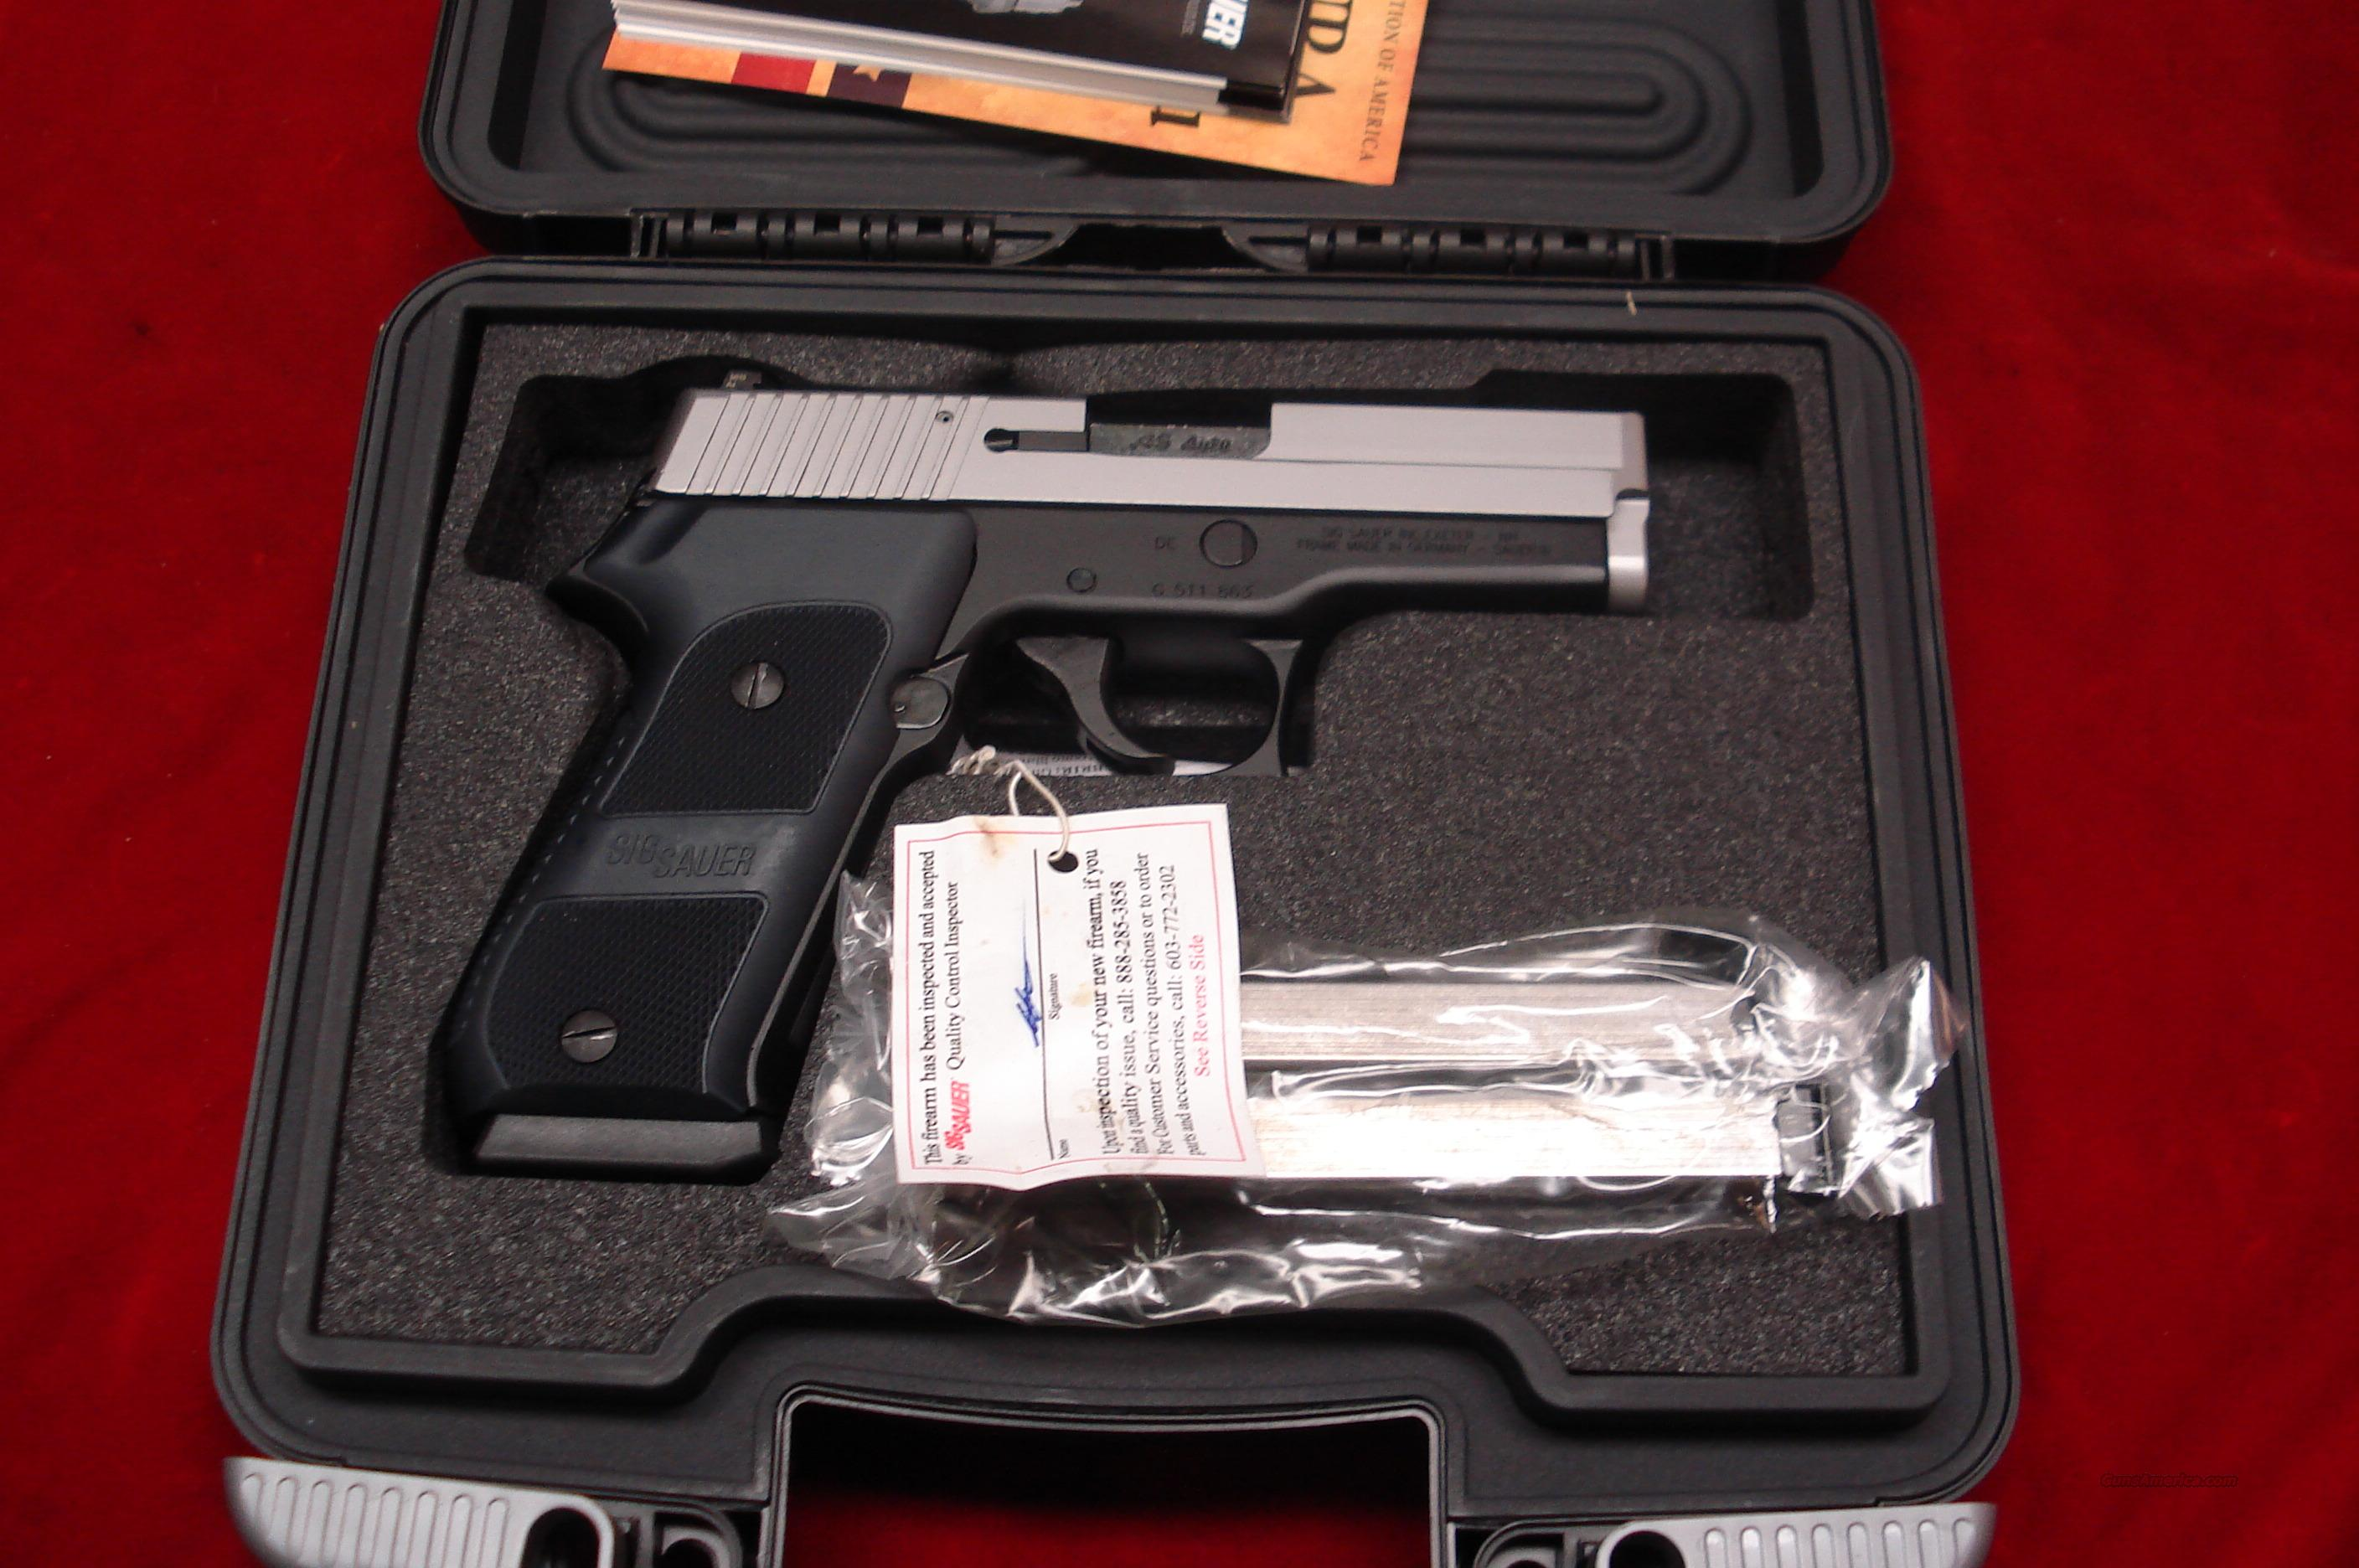 SIG SAUER P220 CARRY 45ACP DAK TRIGGER TWO-TONE WITH NIGHT SIGHTS  NEW  Guns > Pistols > Sig - Sauer/Sigarms Pistols > P220